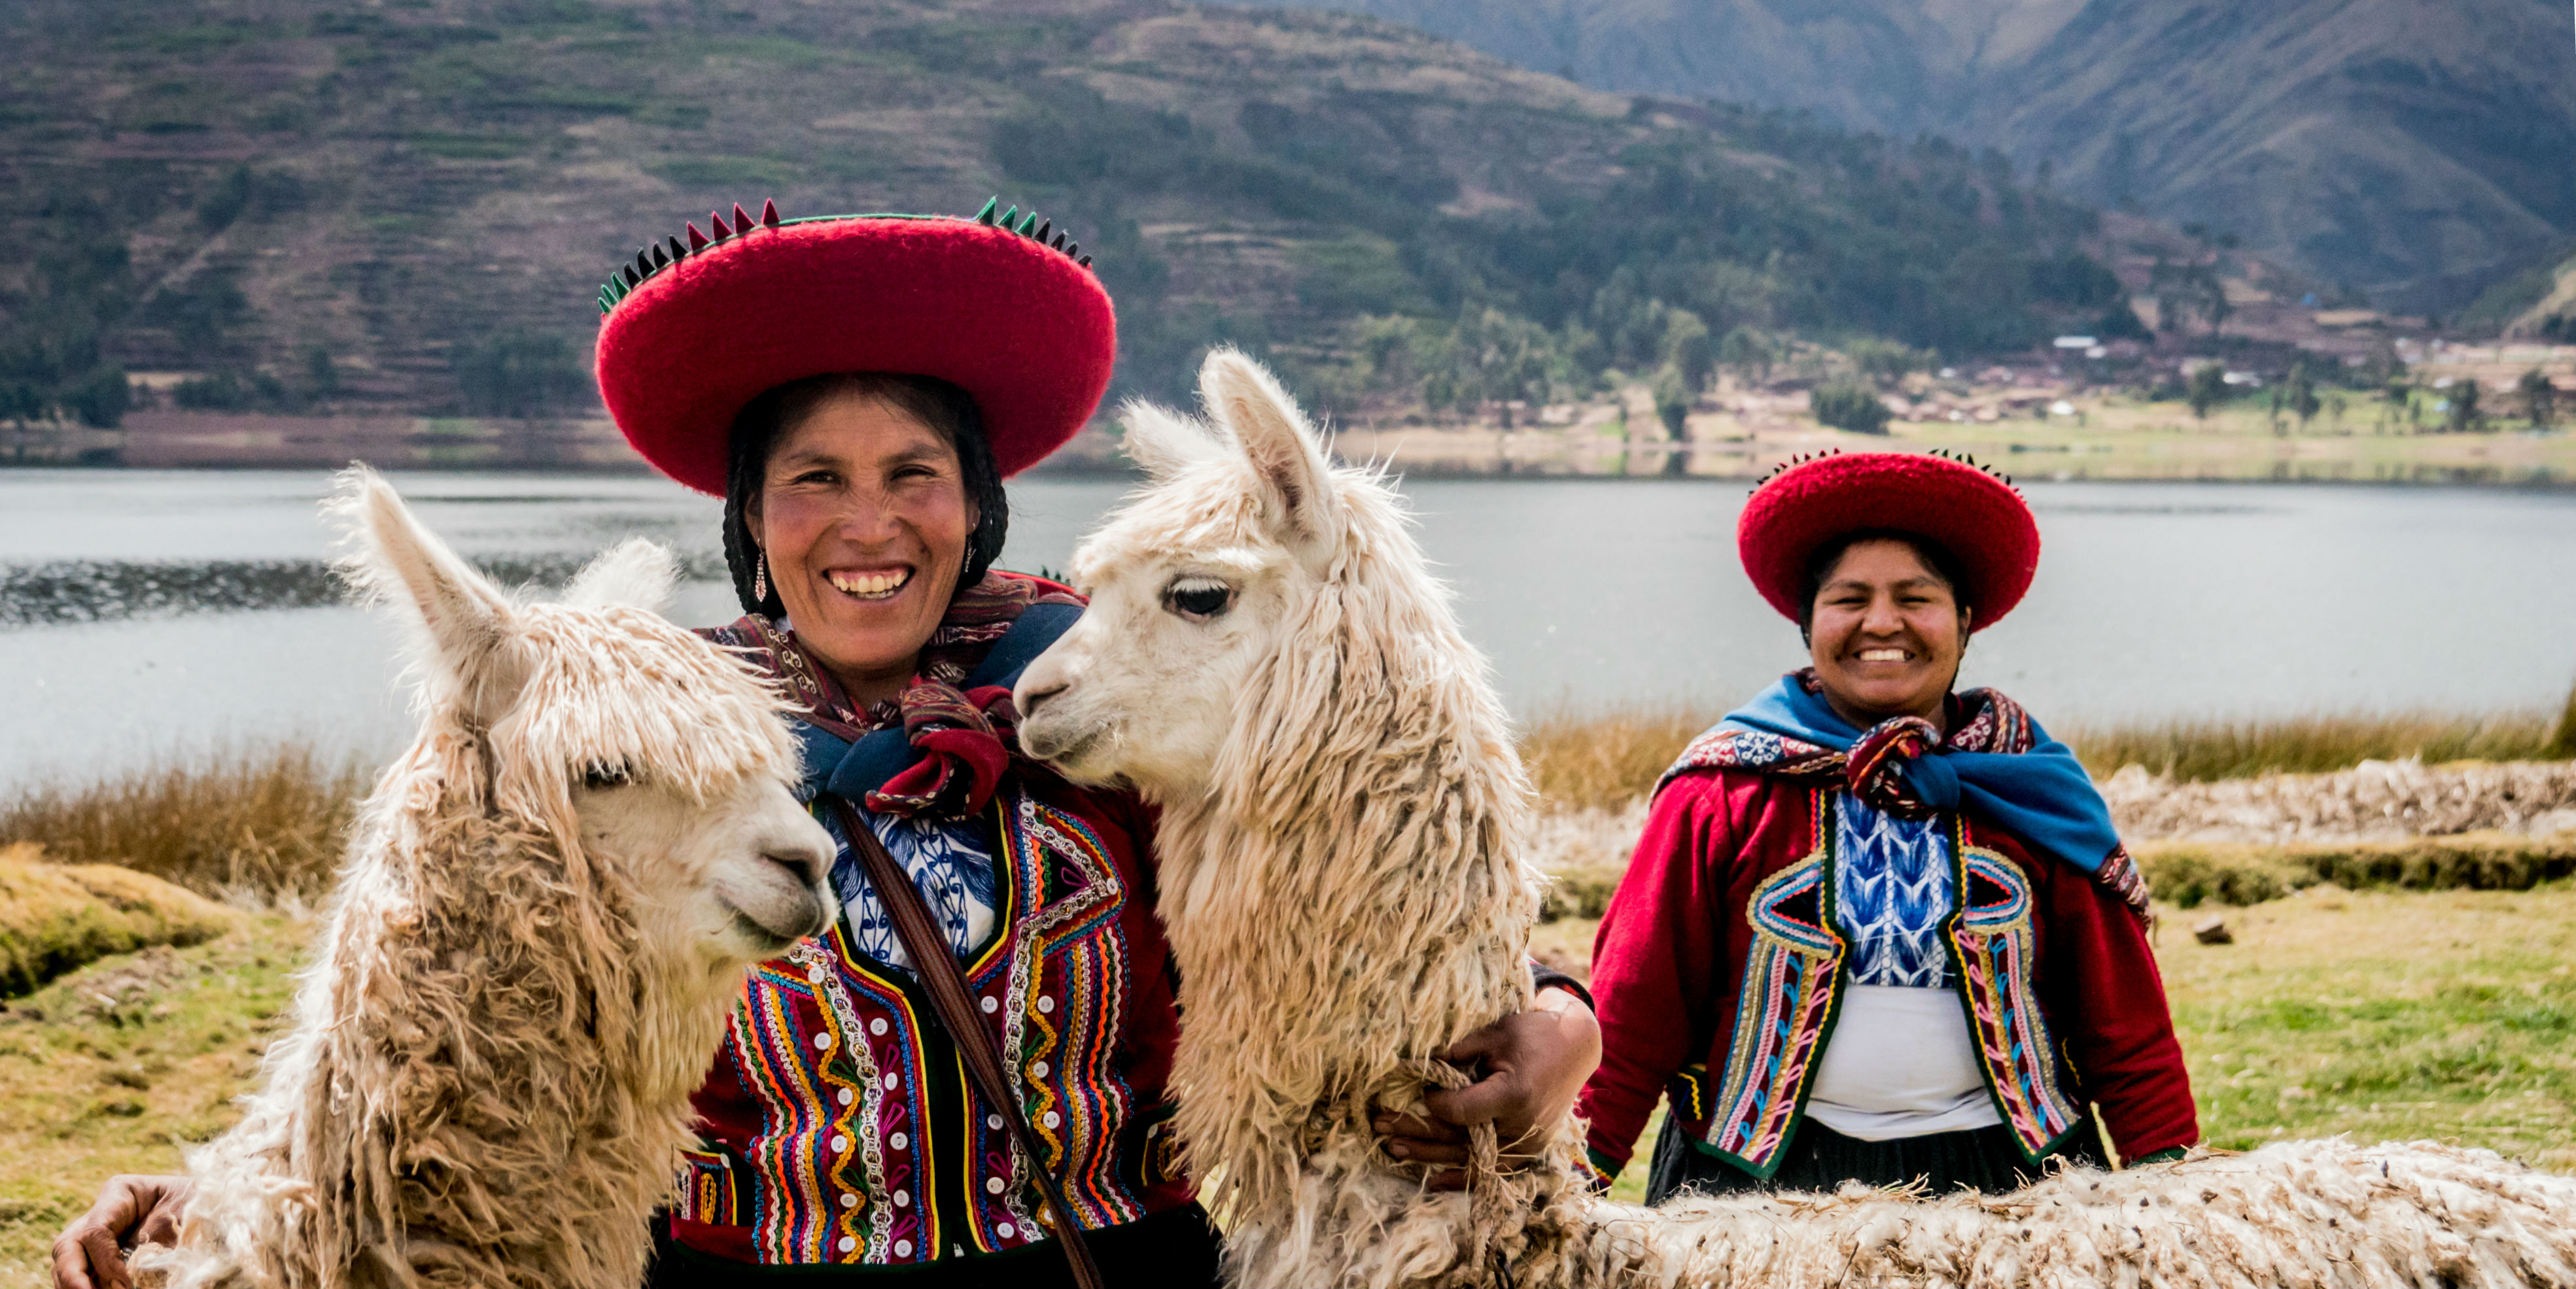 Two women in Cusco pose, while dressed in Andean-styled clothing. Cusco is one the places where you'll have opportunities to see quechua culture in Peru.